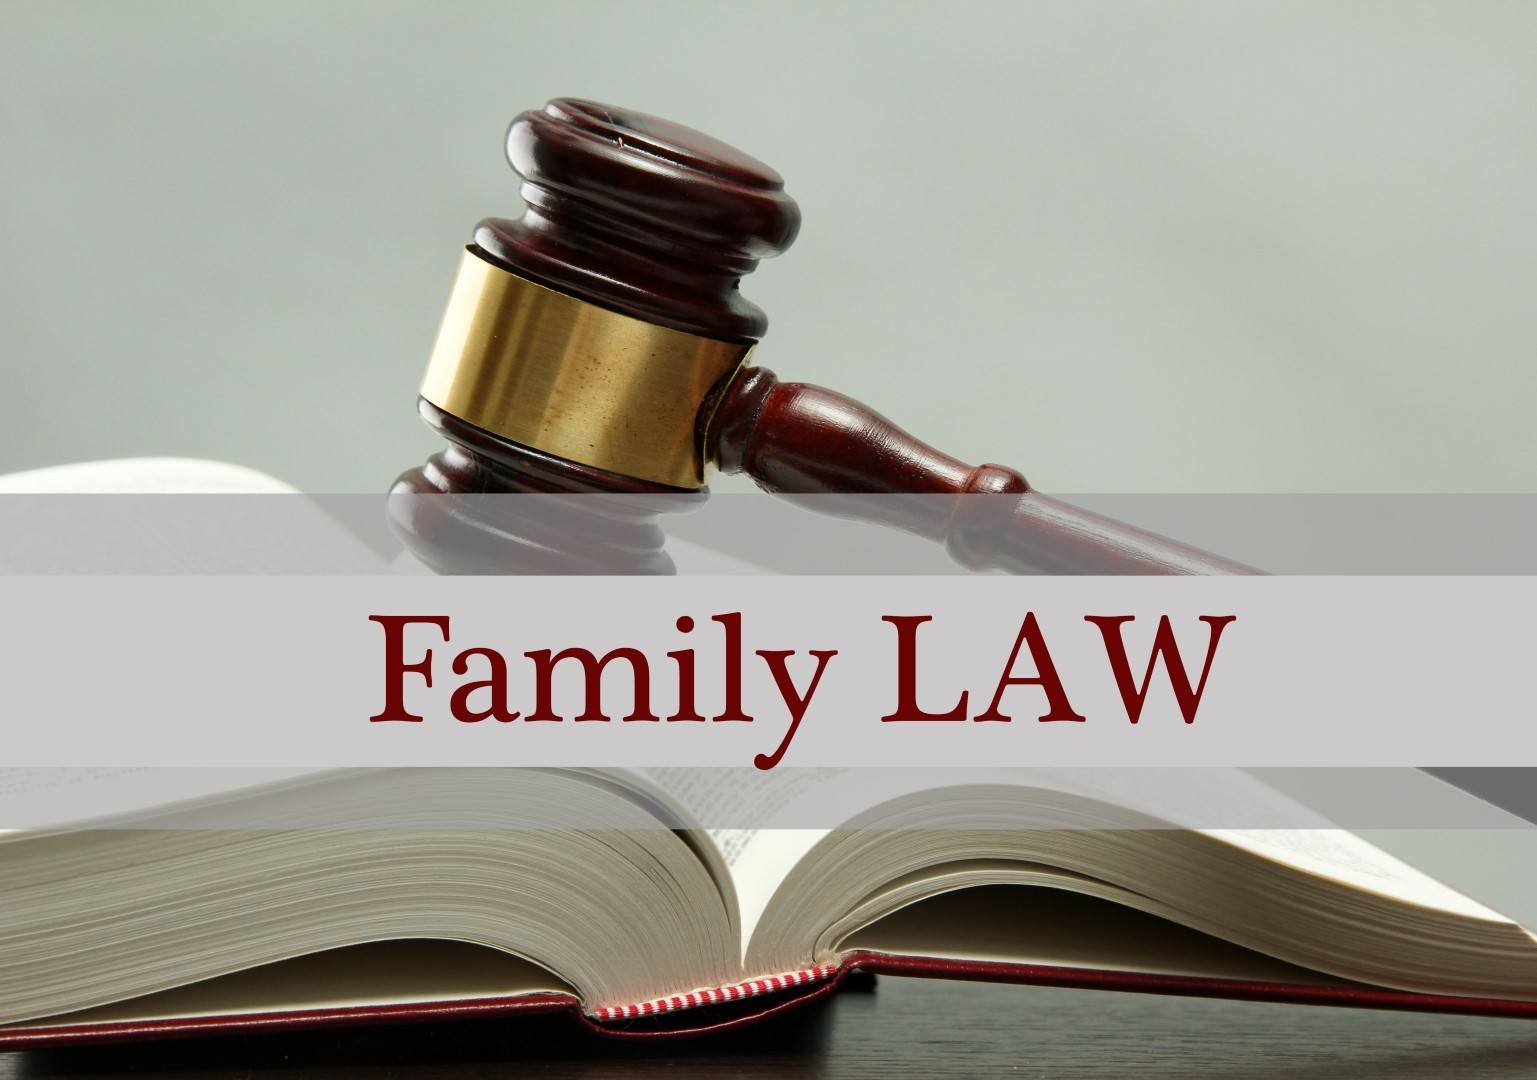 Judge's gavel on book and Family LAW text on gray background